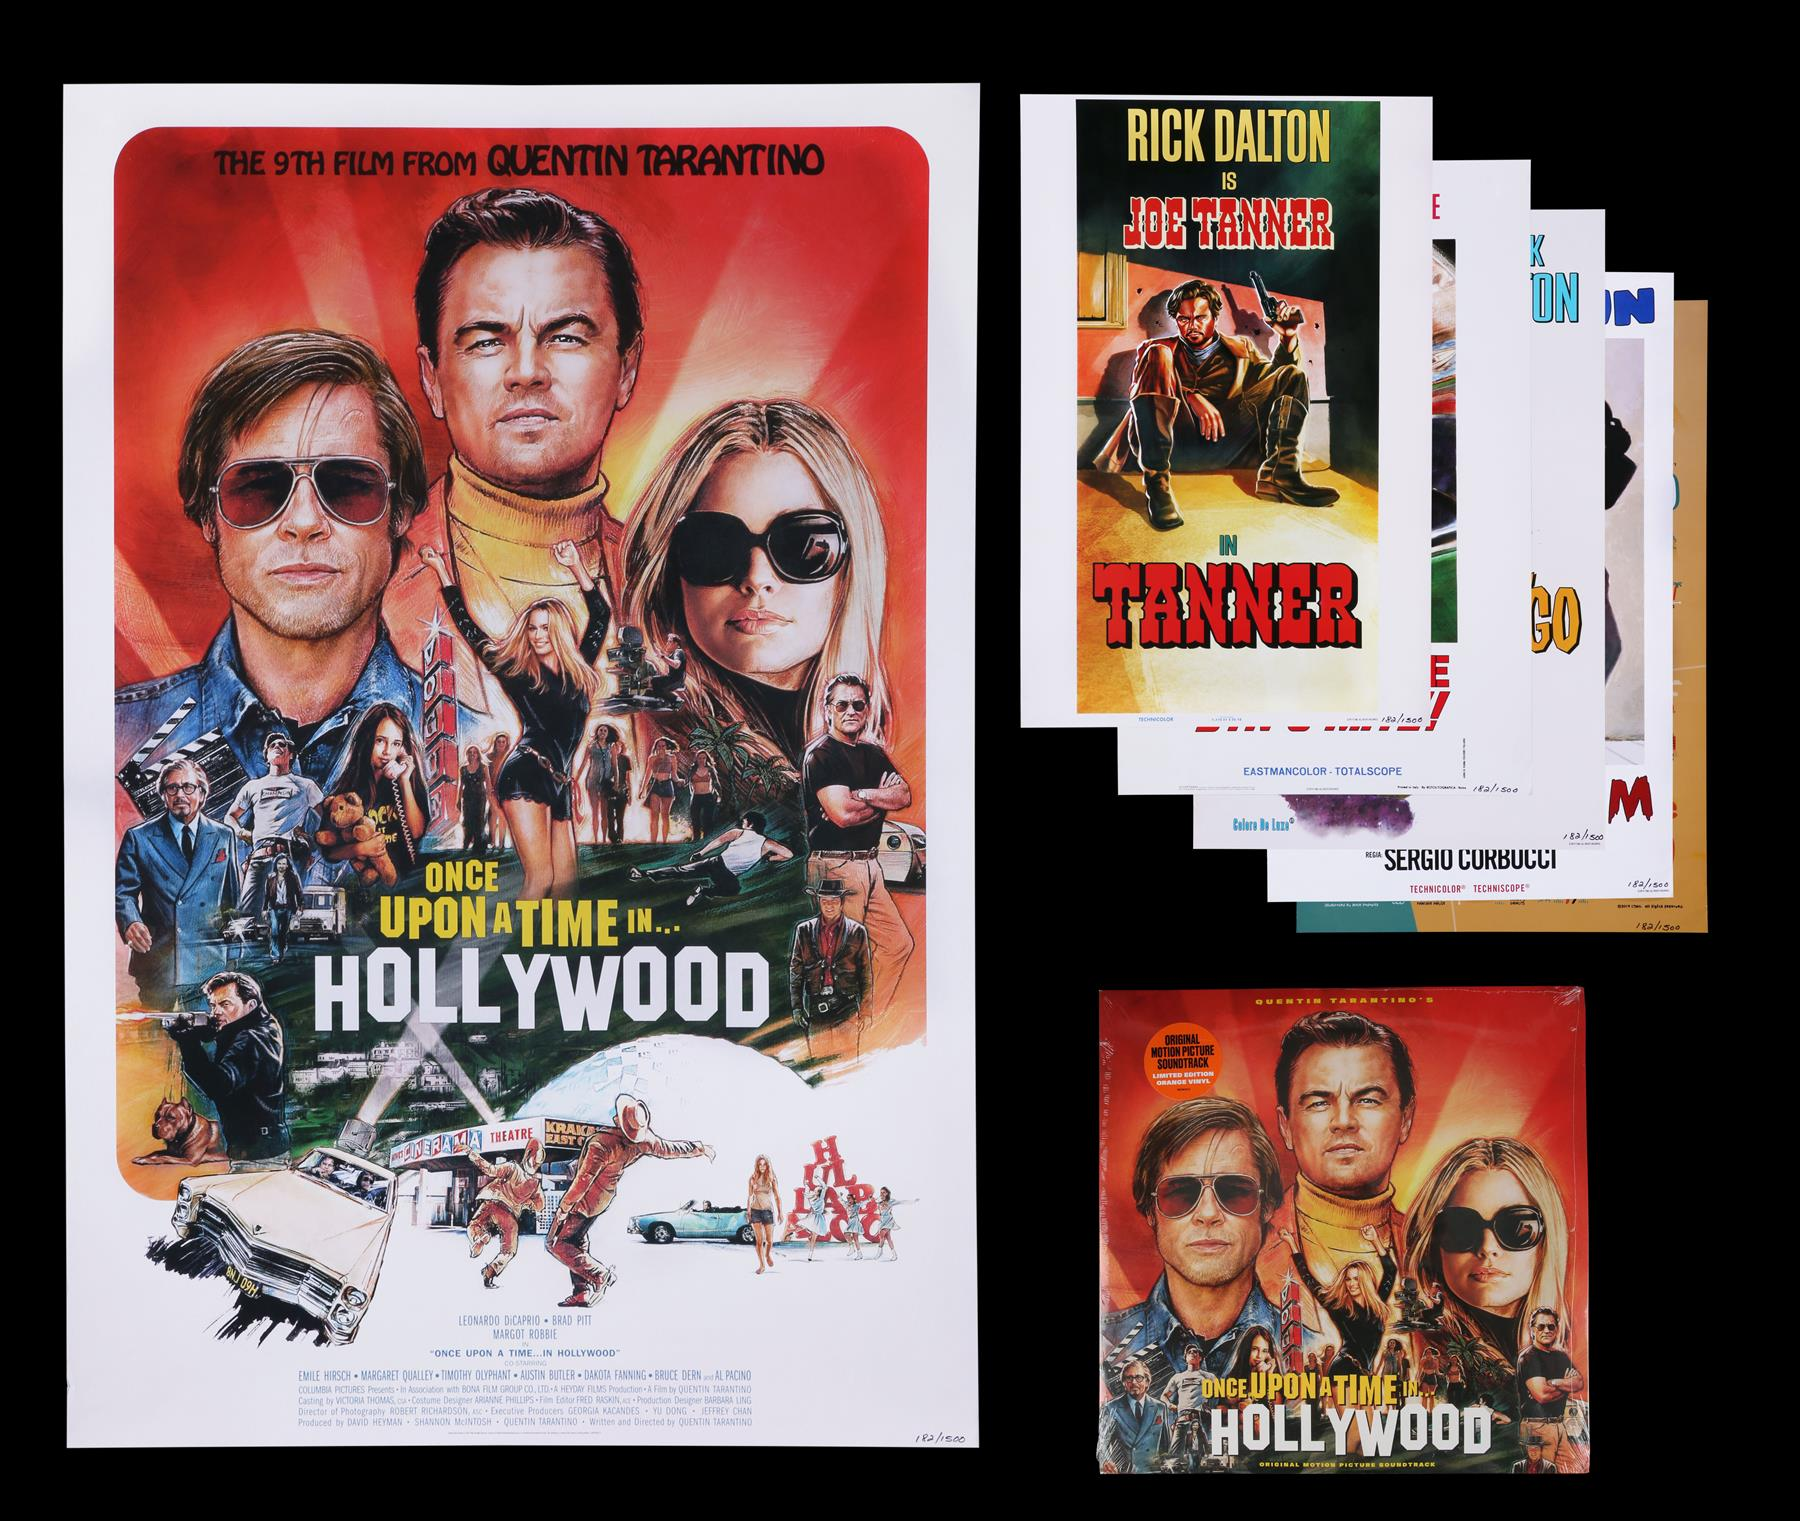 ONCE UPON A TIME IN HOLLYWOOD (2019) - Limited Edition Numbered Soundtrack Album and Posters, 2019